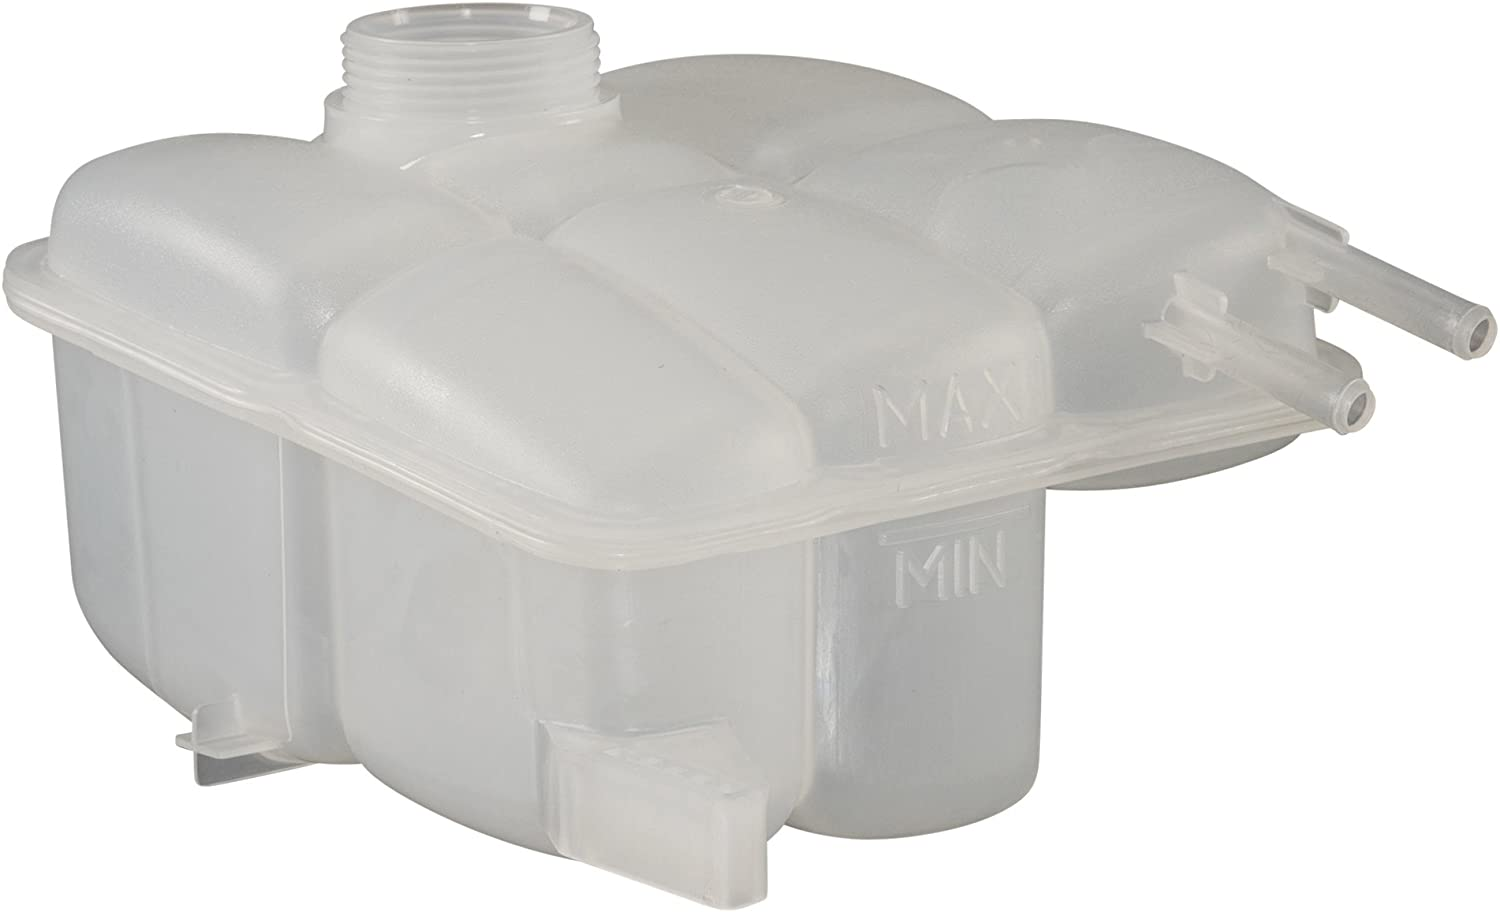 Coolant Tank Reservoir for 2004-2013 Volvo 30 40 50 70 Series fits VO3014104 / 307761510/307226176 / 671-50100